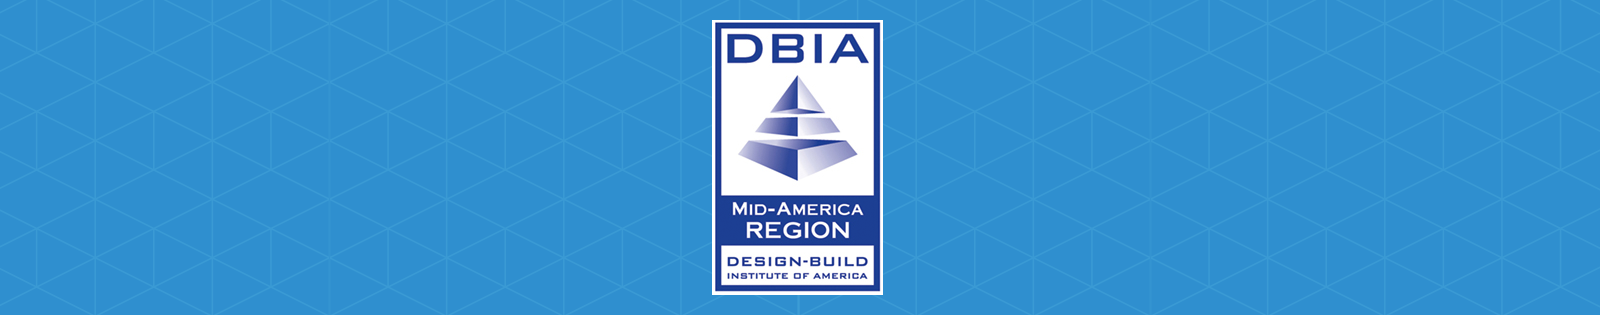 DBIA header with logo